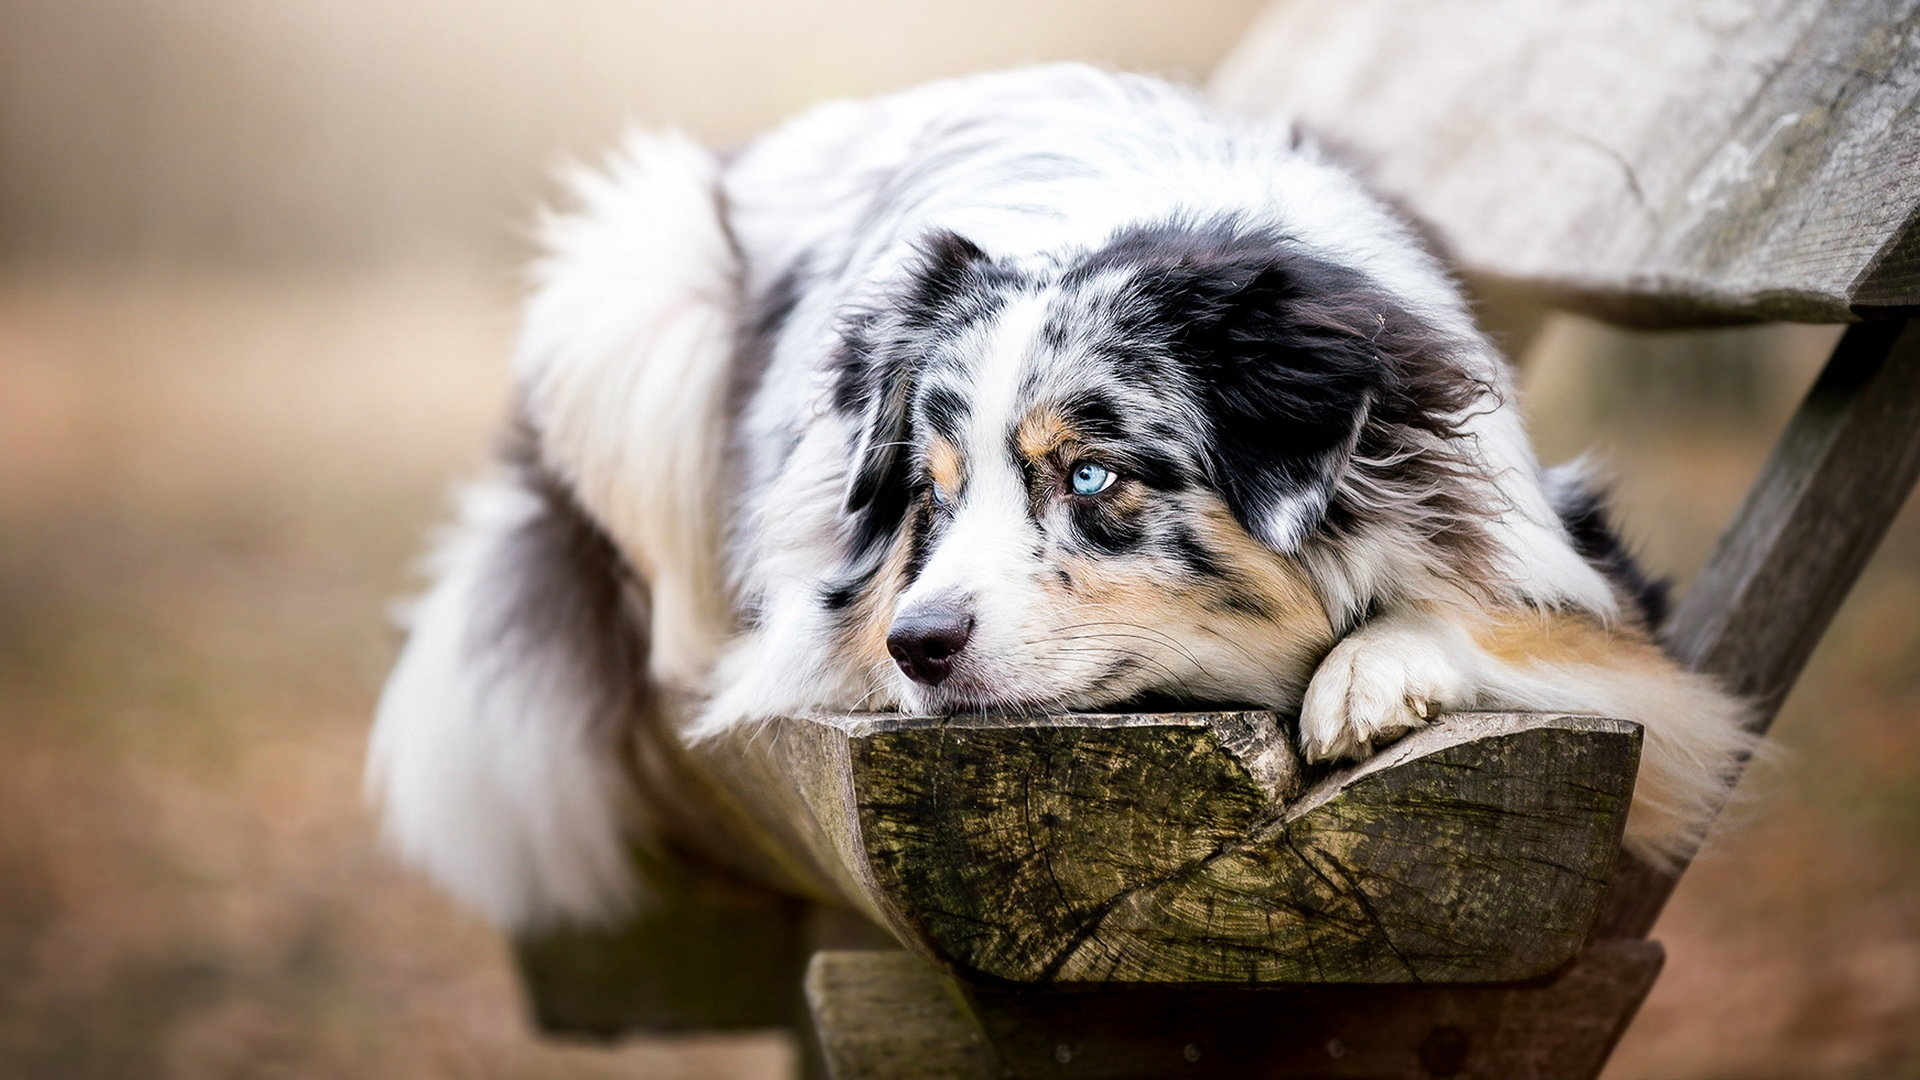 Awesome Australian Shepherd free wallpaper ID:118718 for hd 1920x1080 desktop